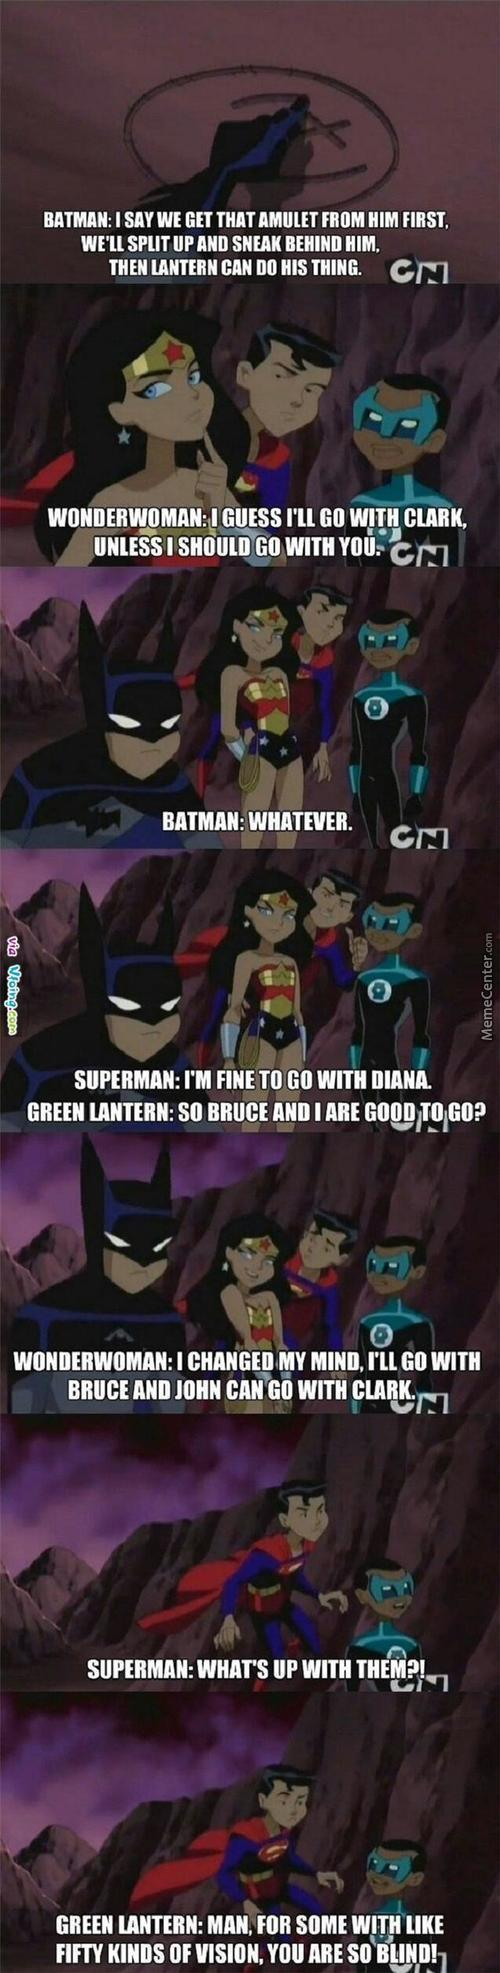 Dumb Superman.